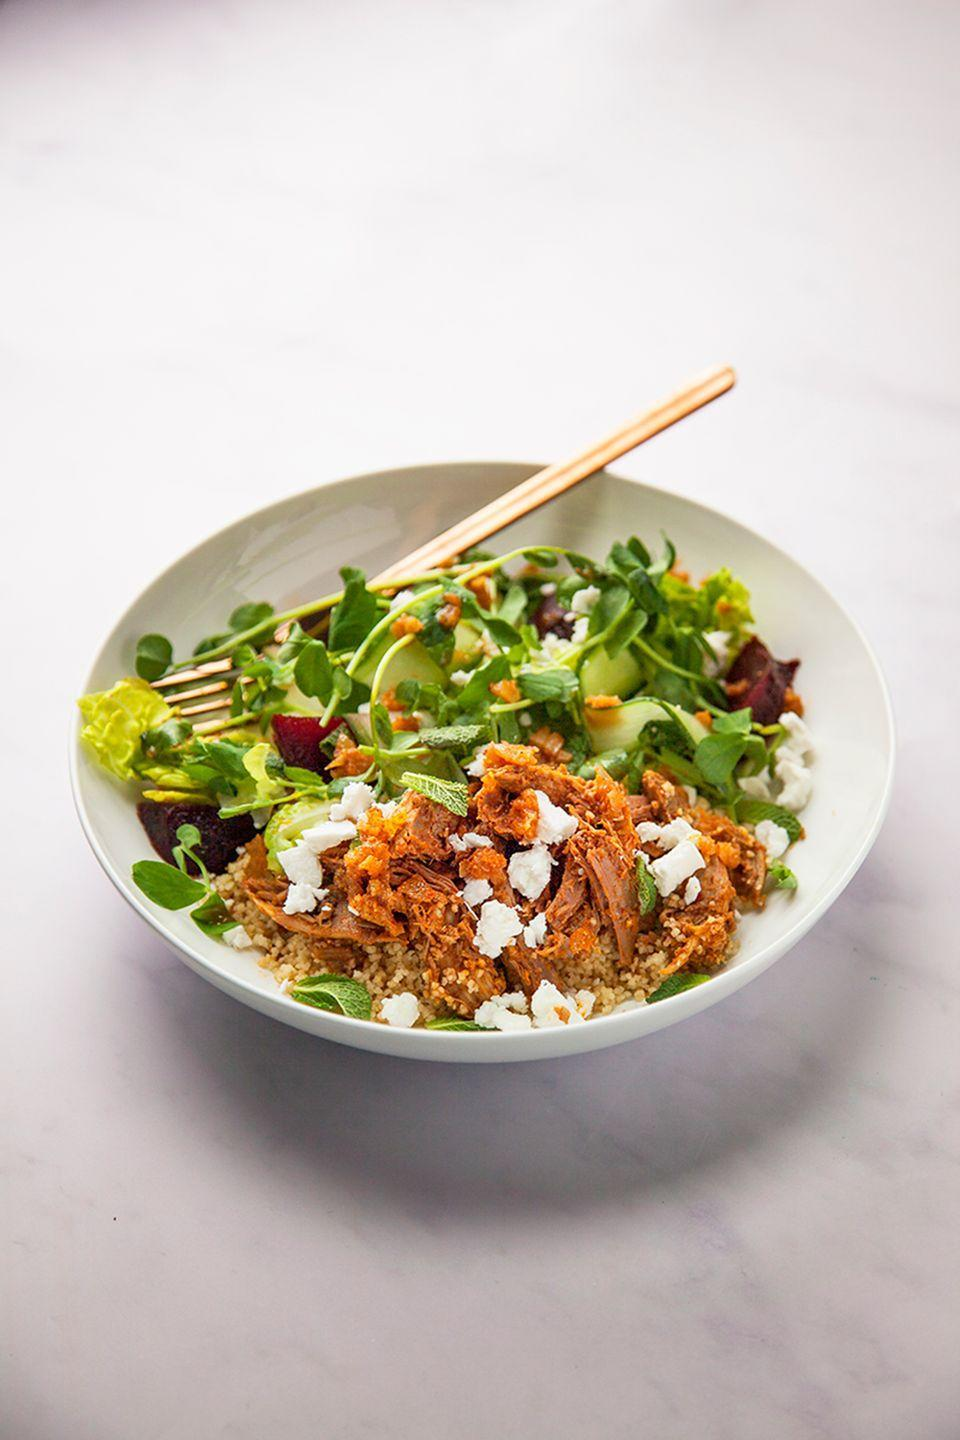 """<p>Don't fancy a huge roast dinner, or wondering what to do with leftover lamb? This salad is the perfect lunch or dinner option.</p><p><strong>Recipe: <a href=""""https://www.goodhousekeeping.com/uk/food/recipes/a26586362/leftover-lamb-salad/"""" rel=""""nofollow noopener"""" target=""""_blank"""" data-ylk=""""slk:Warm lamb salad"""" class=""""link rapid-noclick-resp"""">Warm lamb salad</a></strong></p>"""